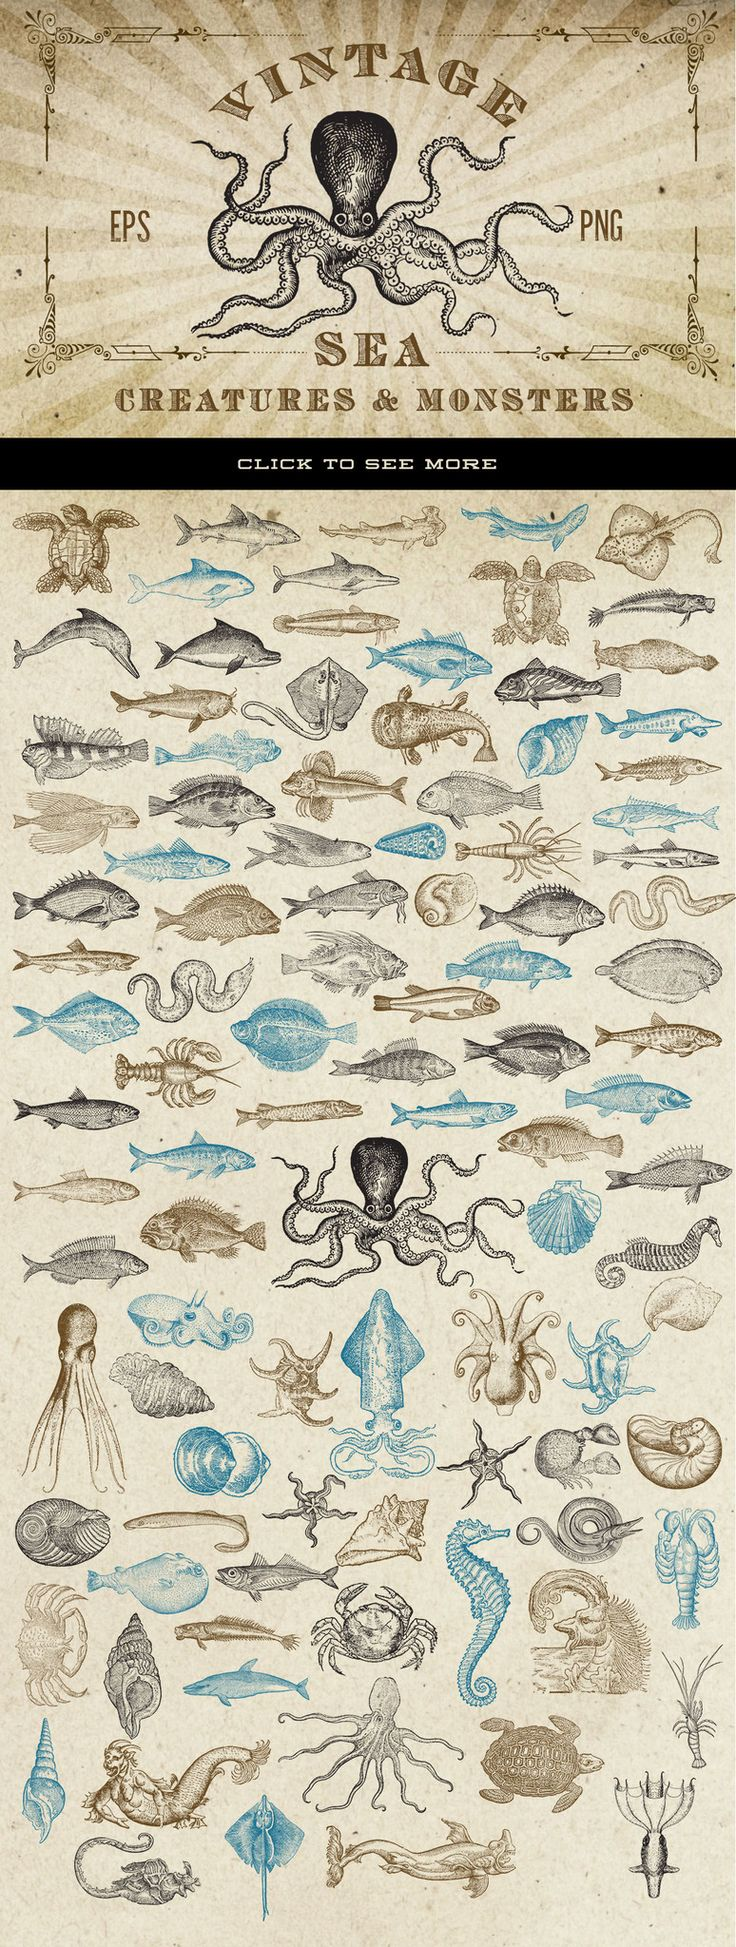 This is a collection of antique / vintage vector graphics of fish, octopus, lobster, shark, sea monsters, eels, crab, shrimp, and more that have been carefully chosen from a variety of sources from th